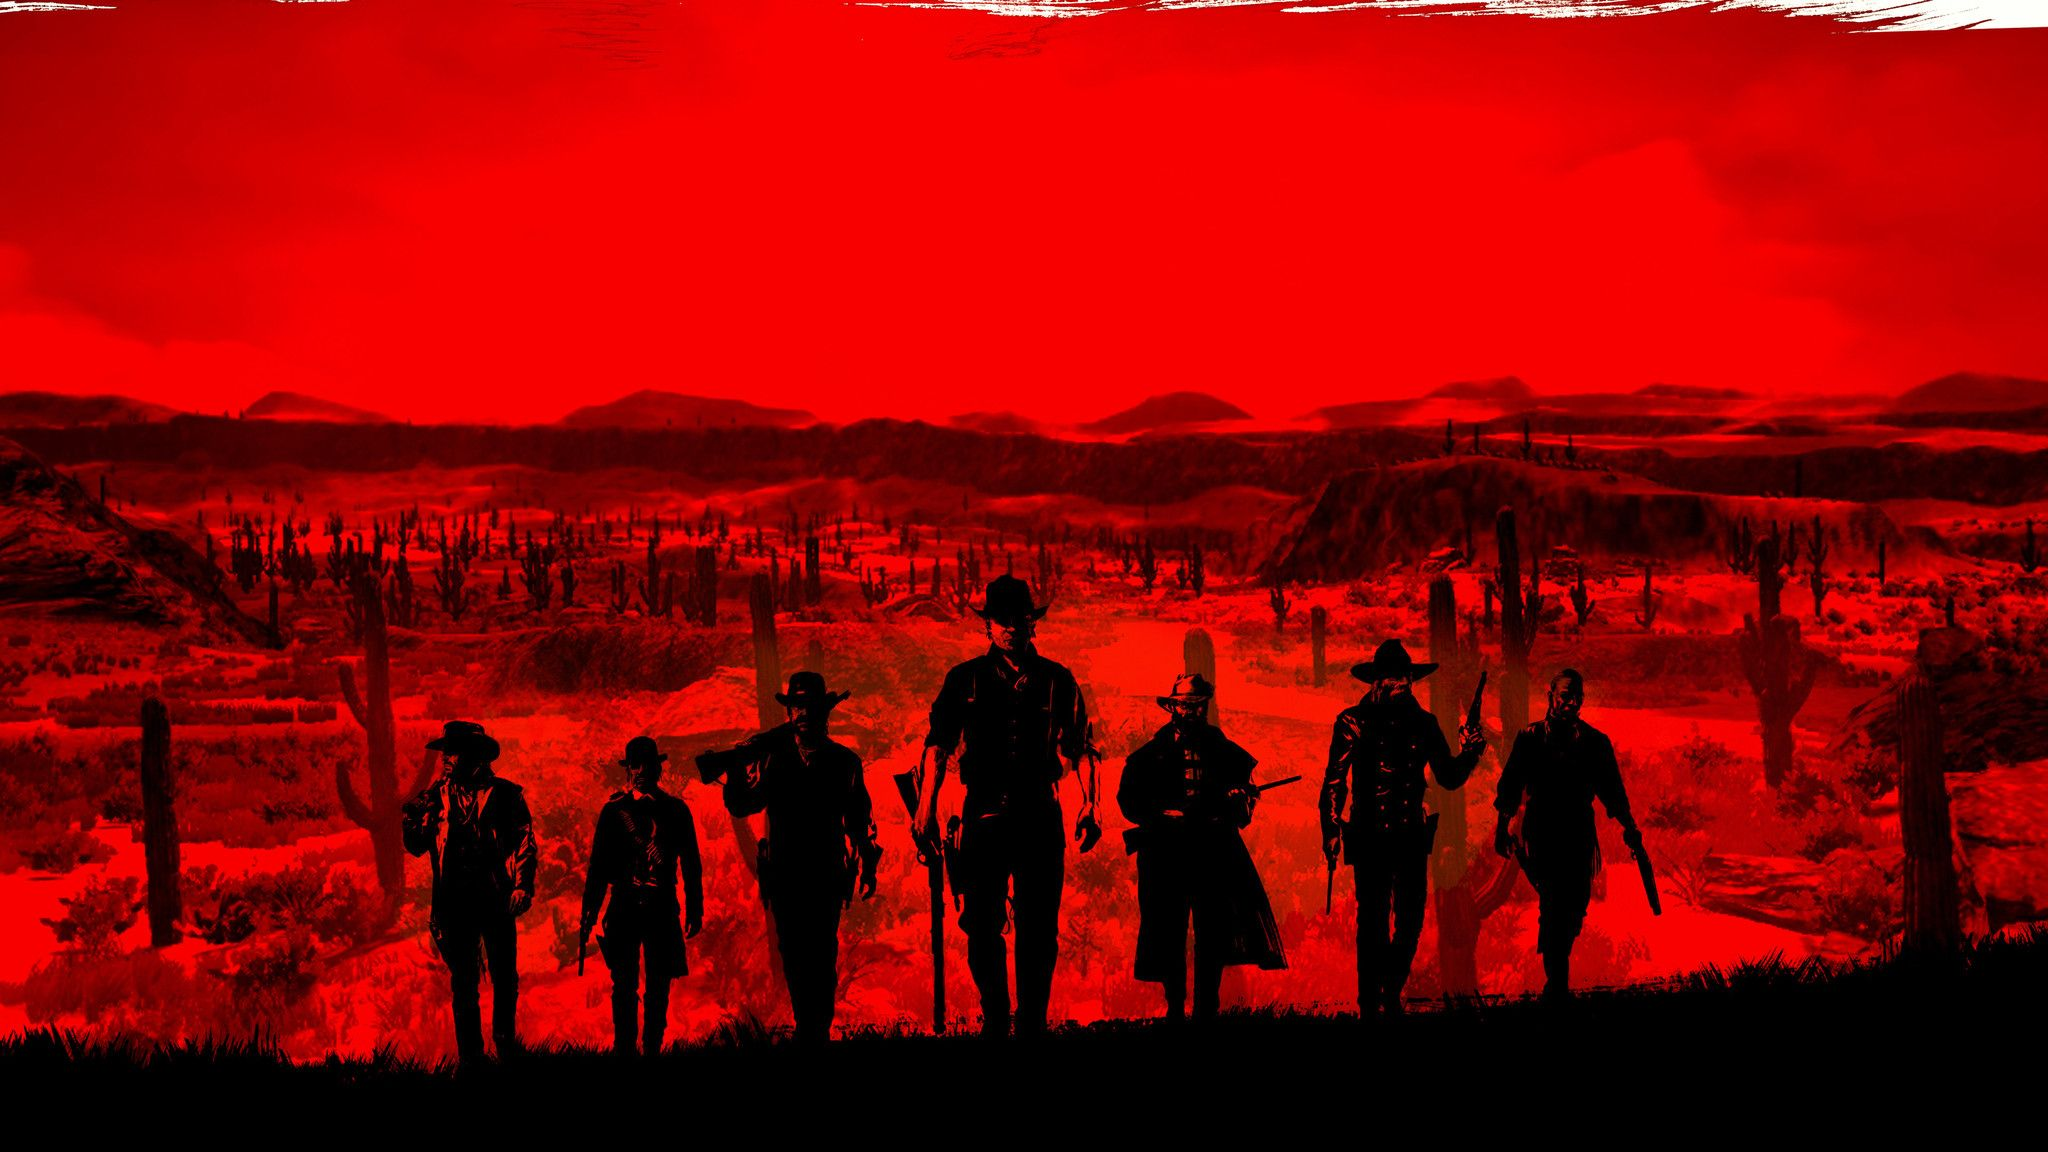 Red Dead Redemption 2 Wallpaper Picture Red Dead Redemption 2